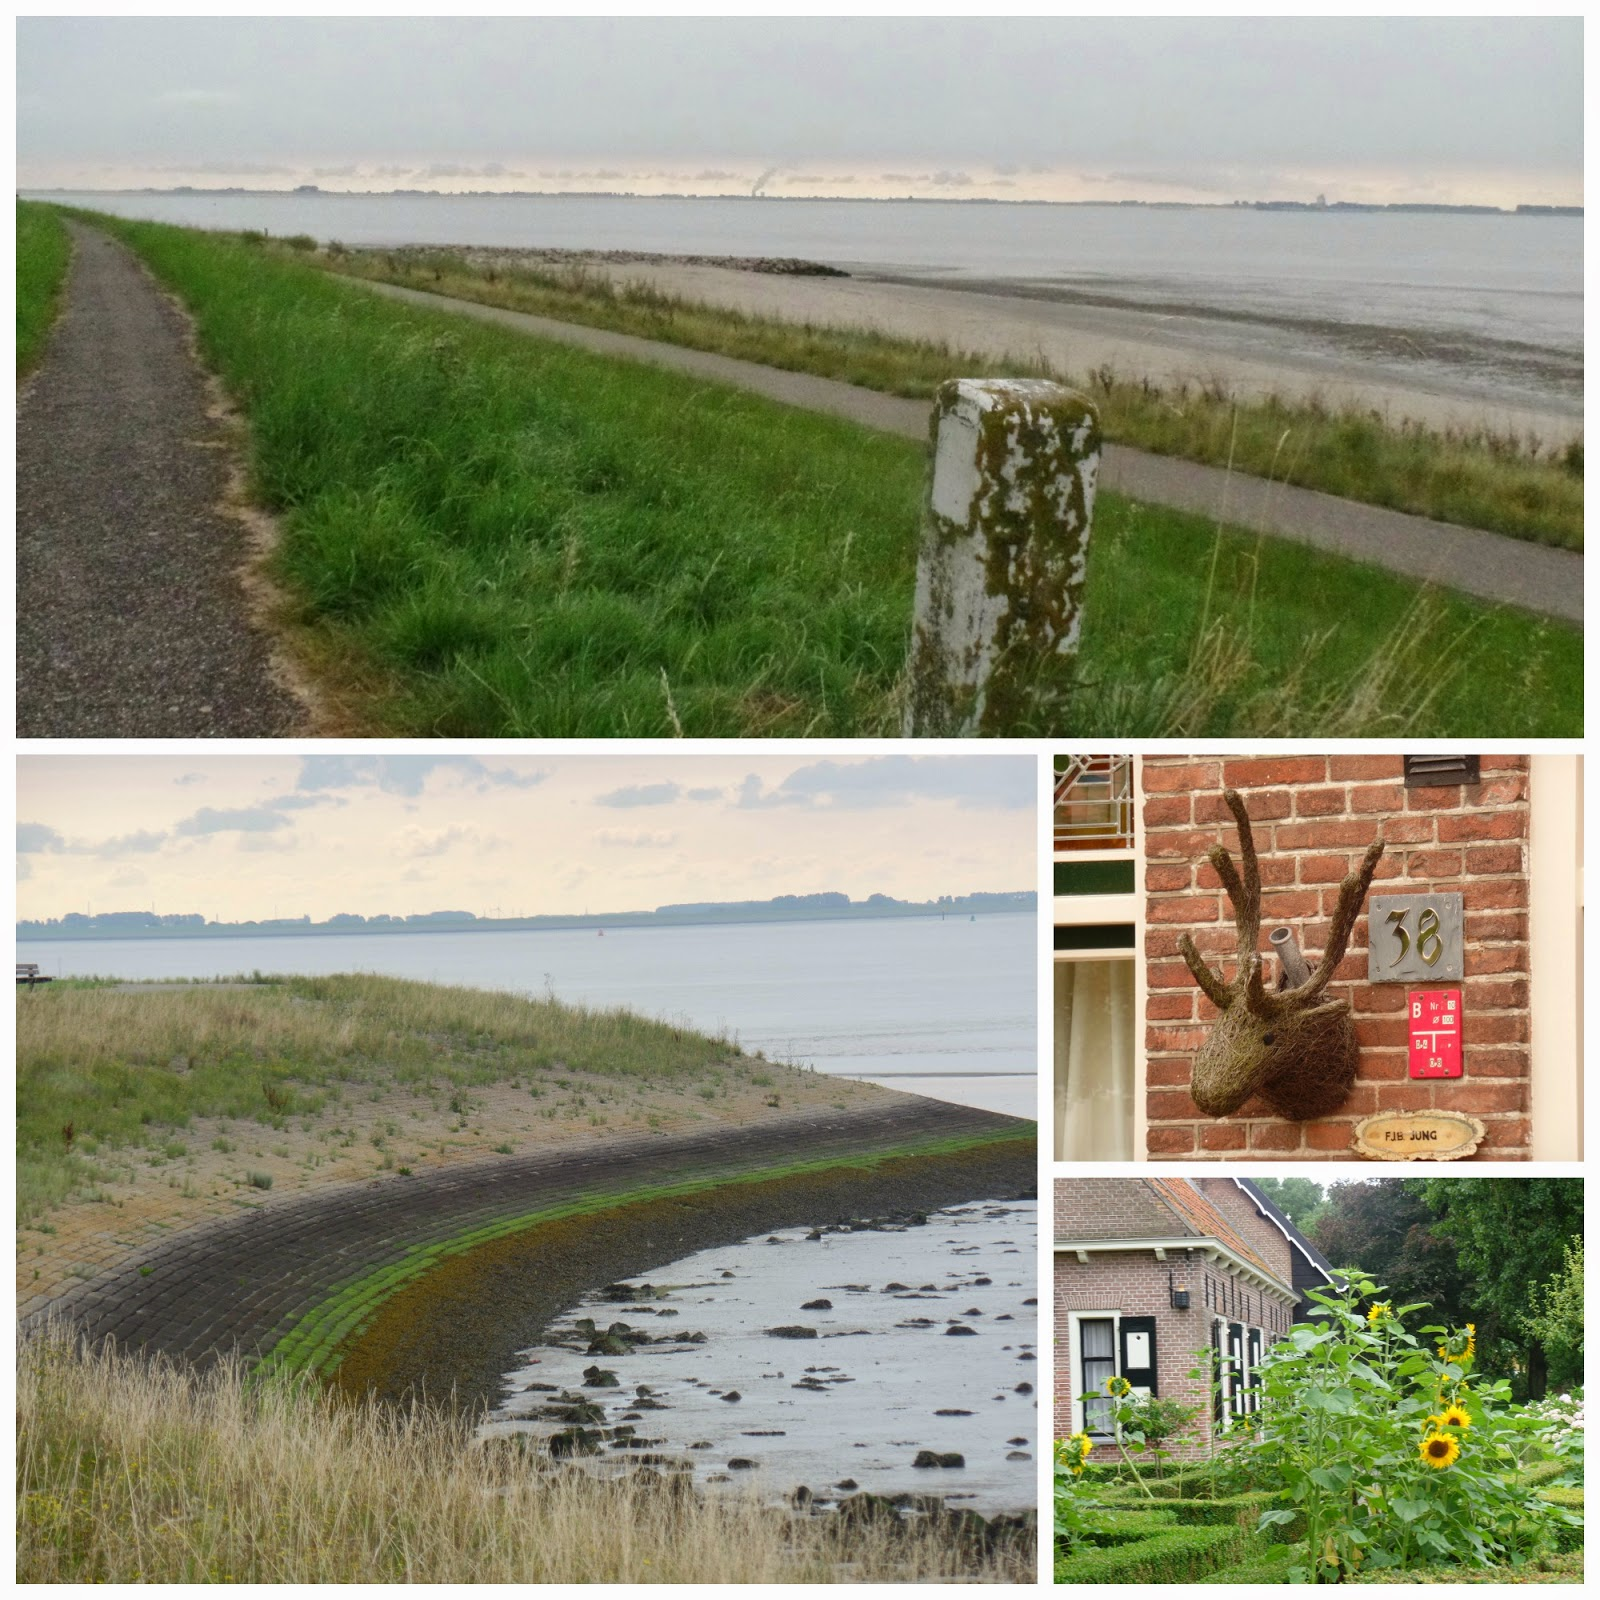 A morning walk along the dikes and into the little town. There were signs warning about bears!